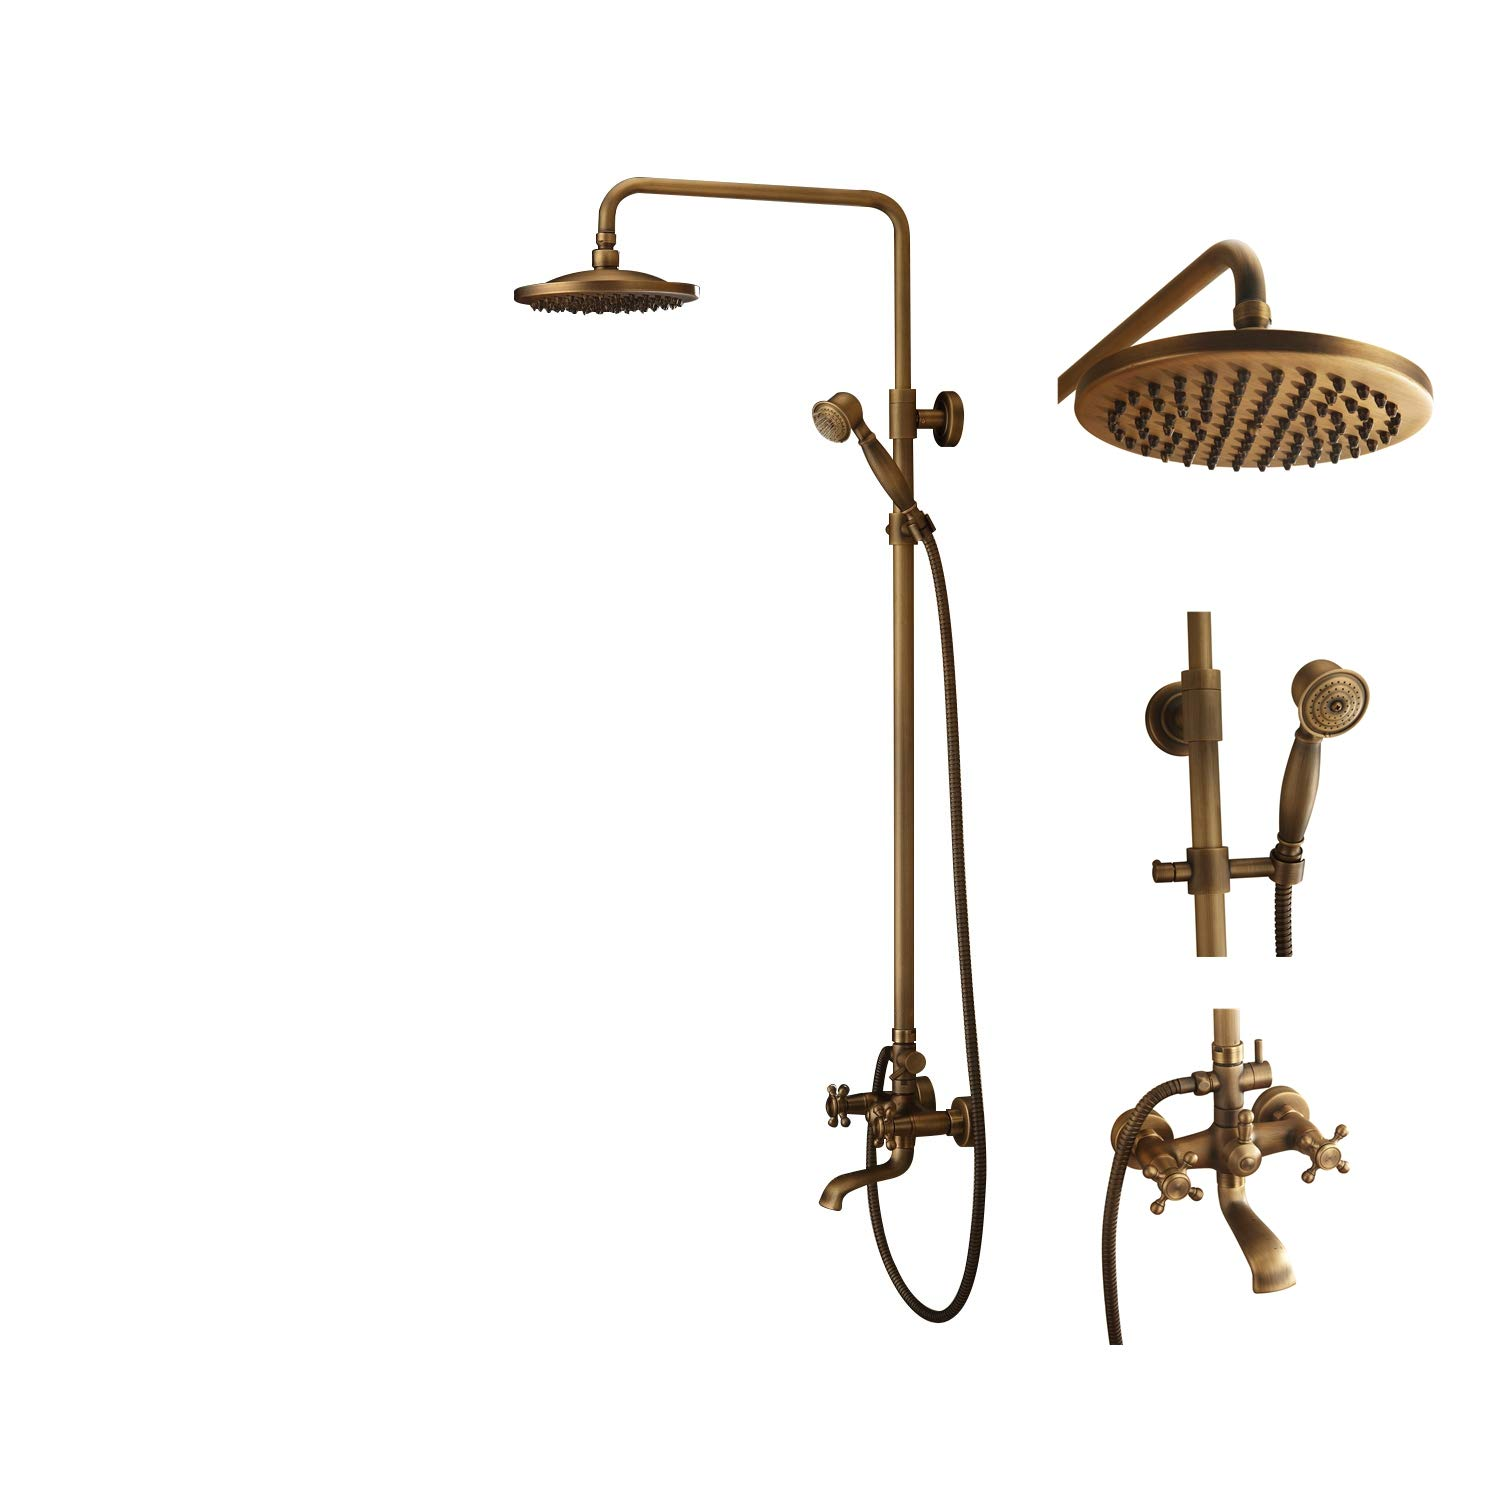 Bath Shower Faucet Set Complete Antique Brass Finish Wall Mount With